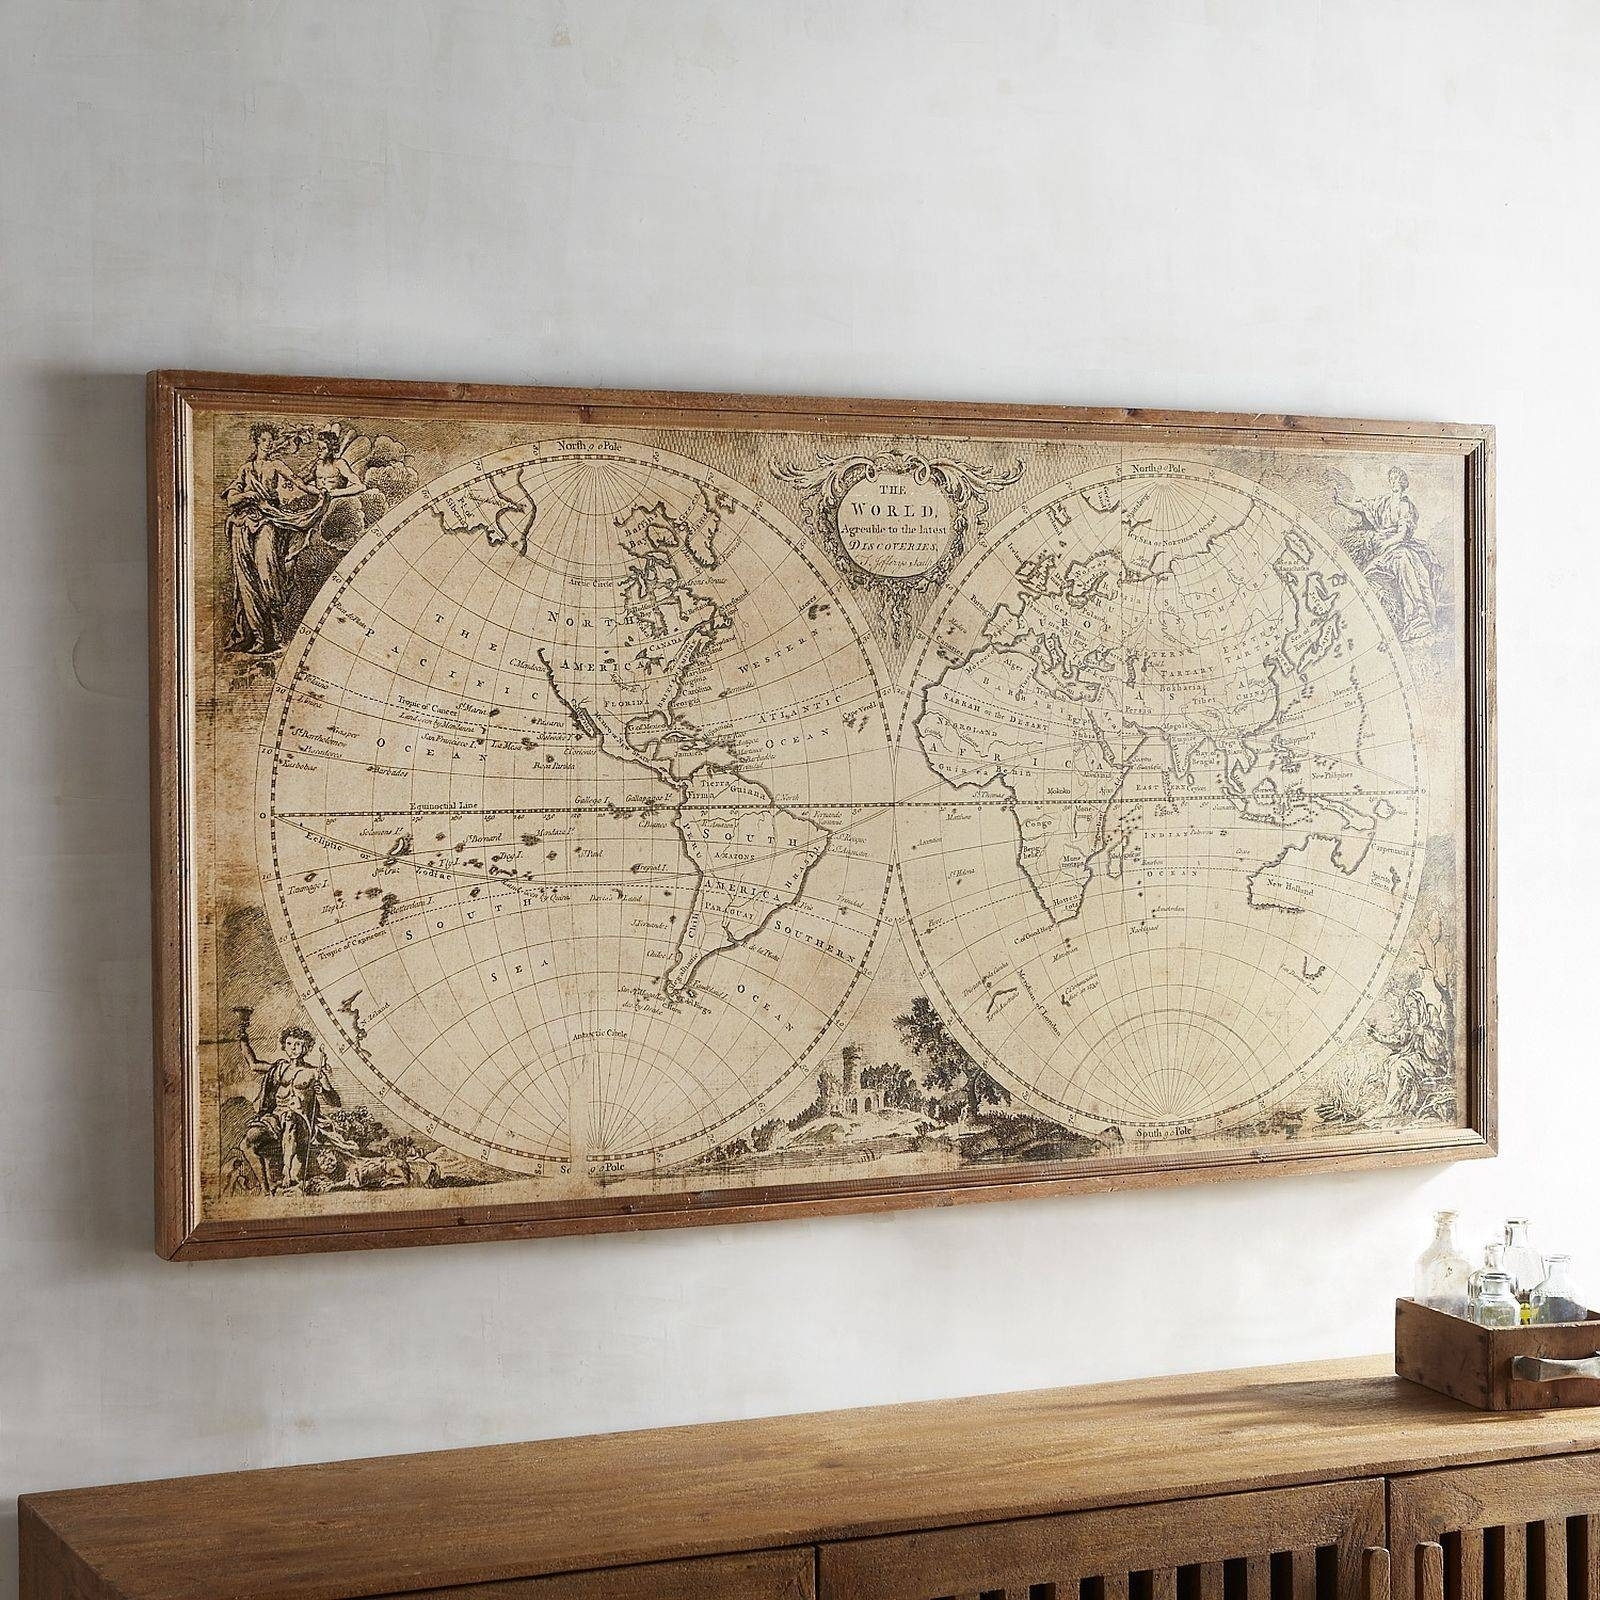 Latest Framed World Map Wall Art Throughout Large On Baadbe Maps Of in Maps Wall Art (Image 10 of 20)